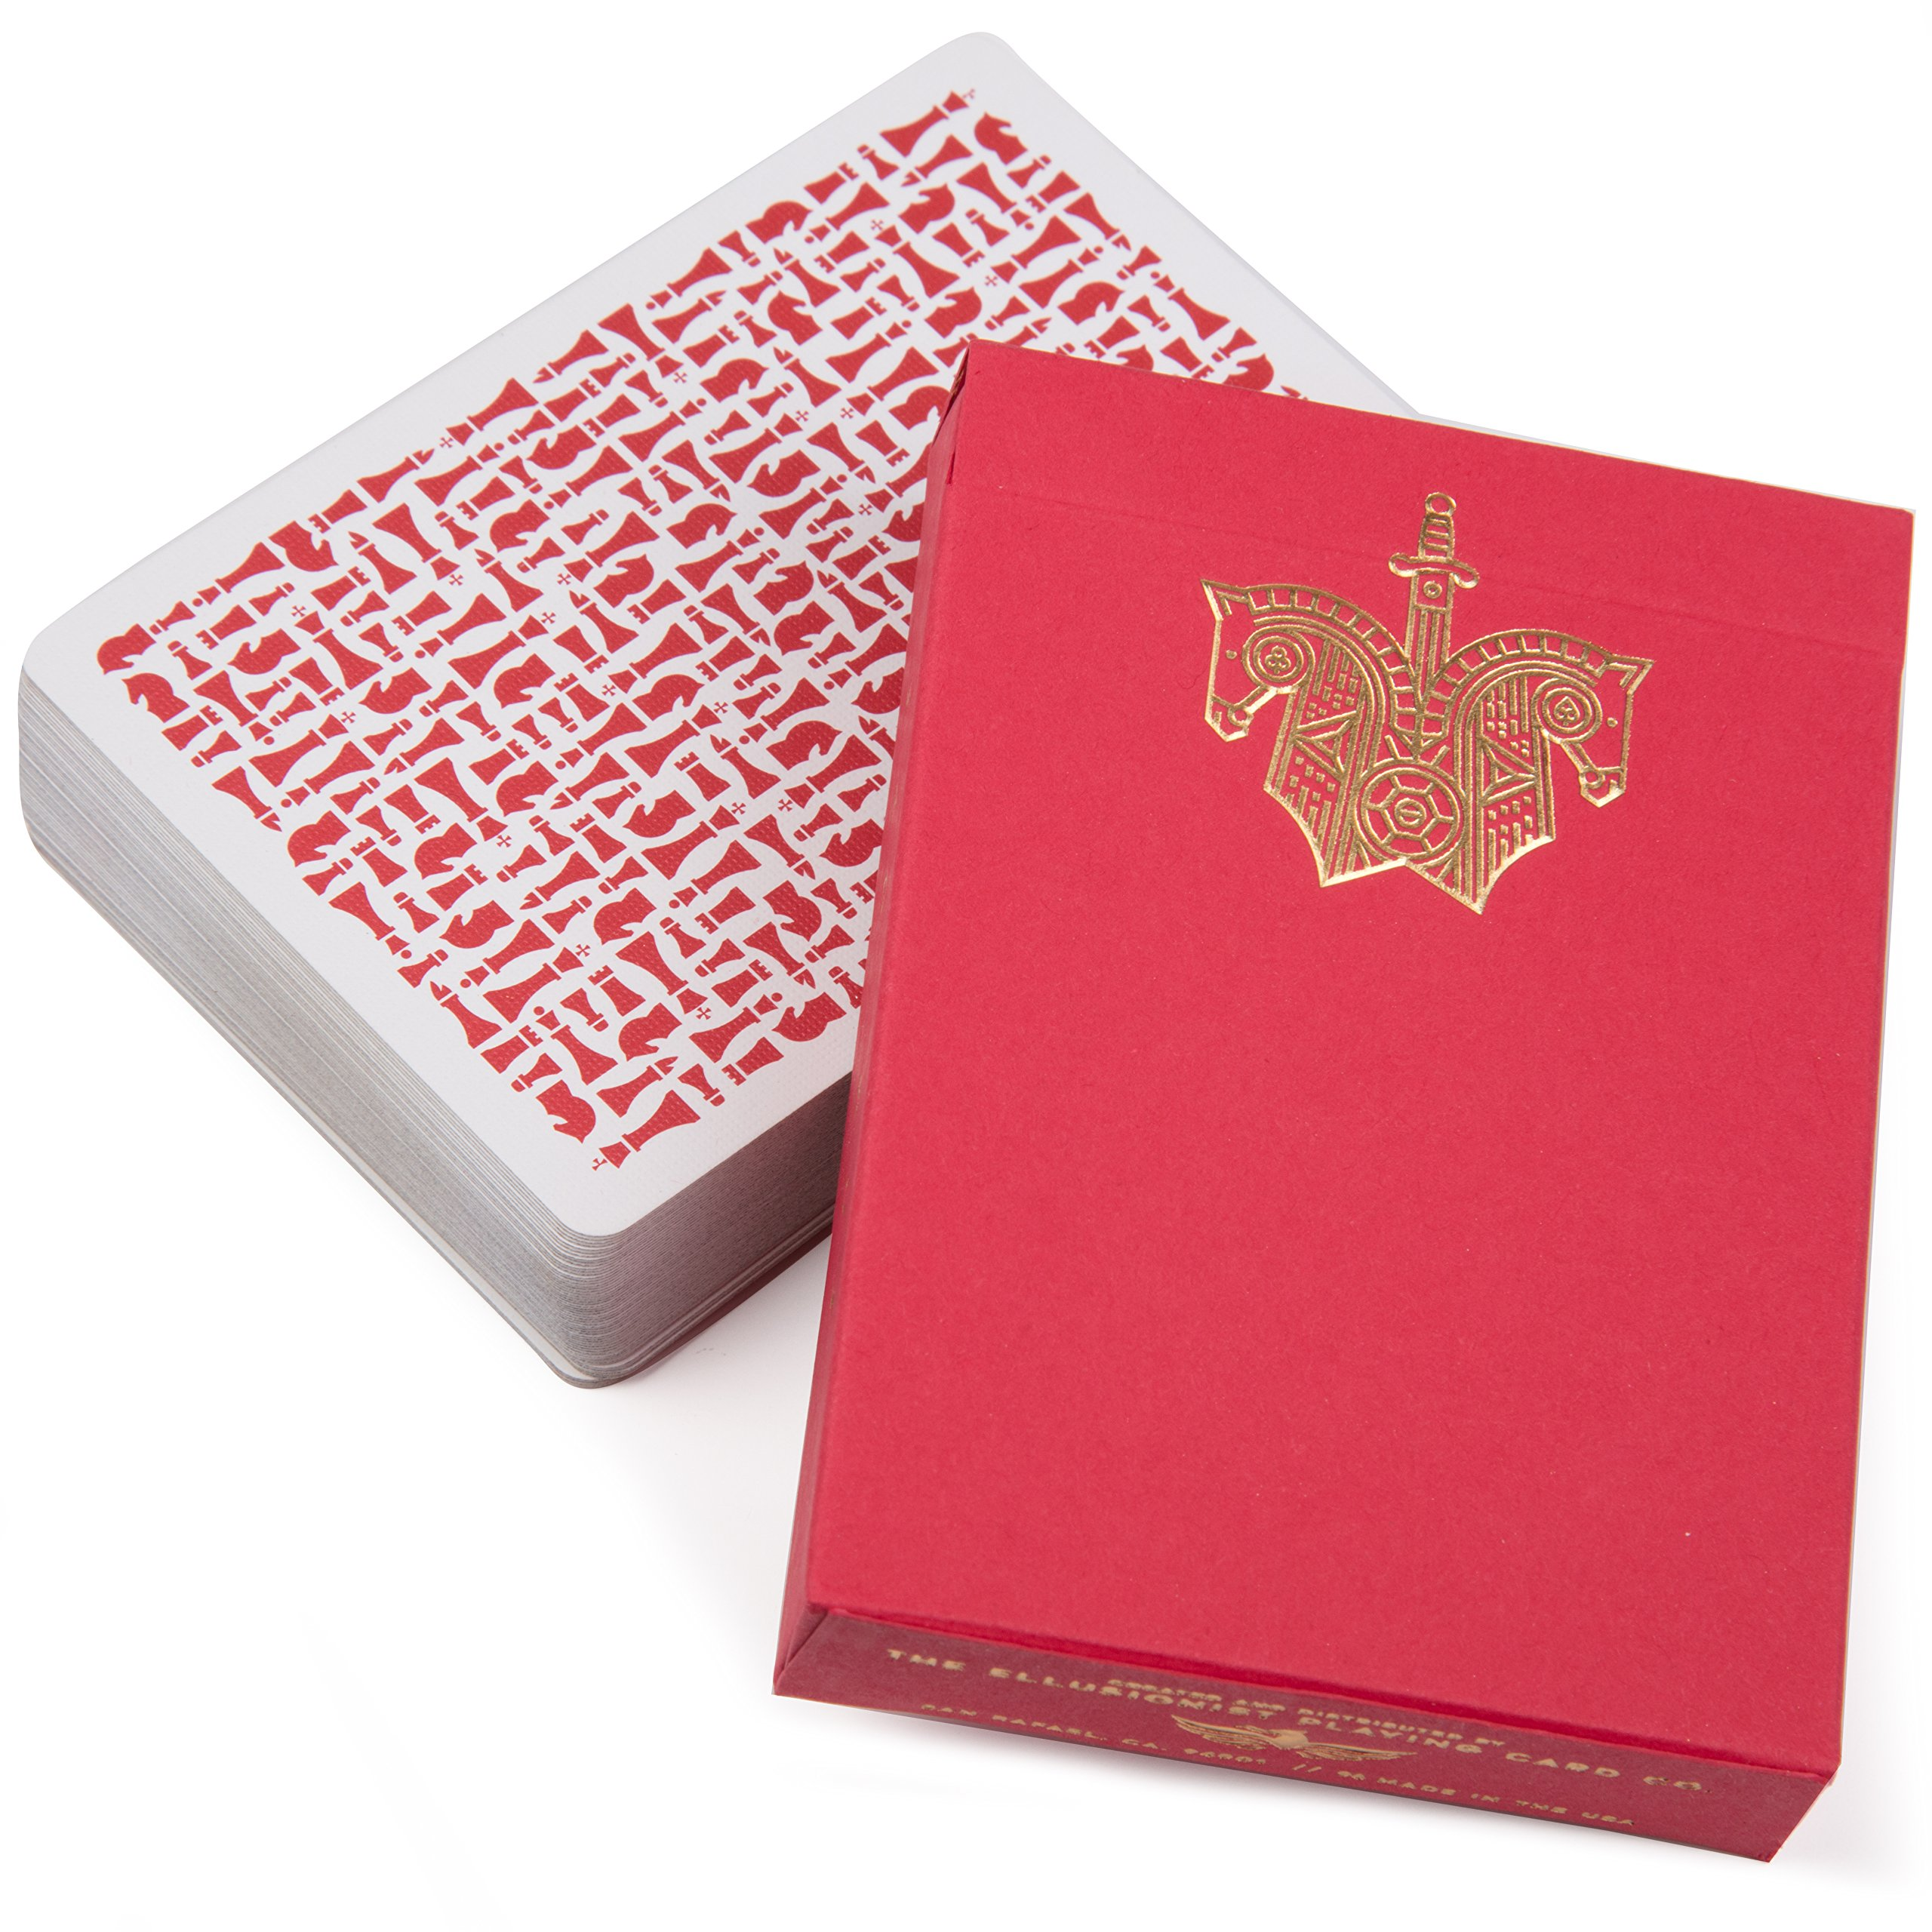 Ellusionist Red Knights Playing Cards Deck - by Daniel Madison and Chris Ramsay - Make Your Move by Ellusionist